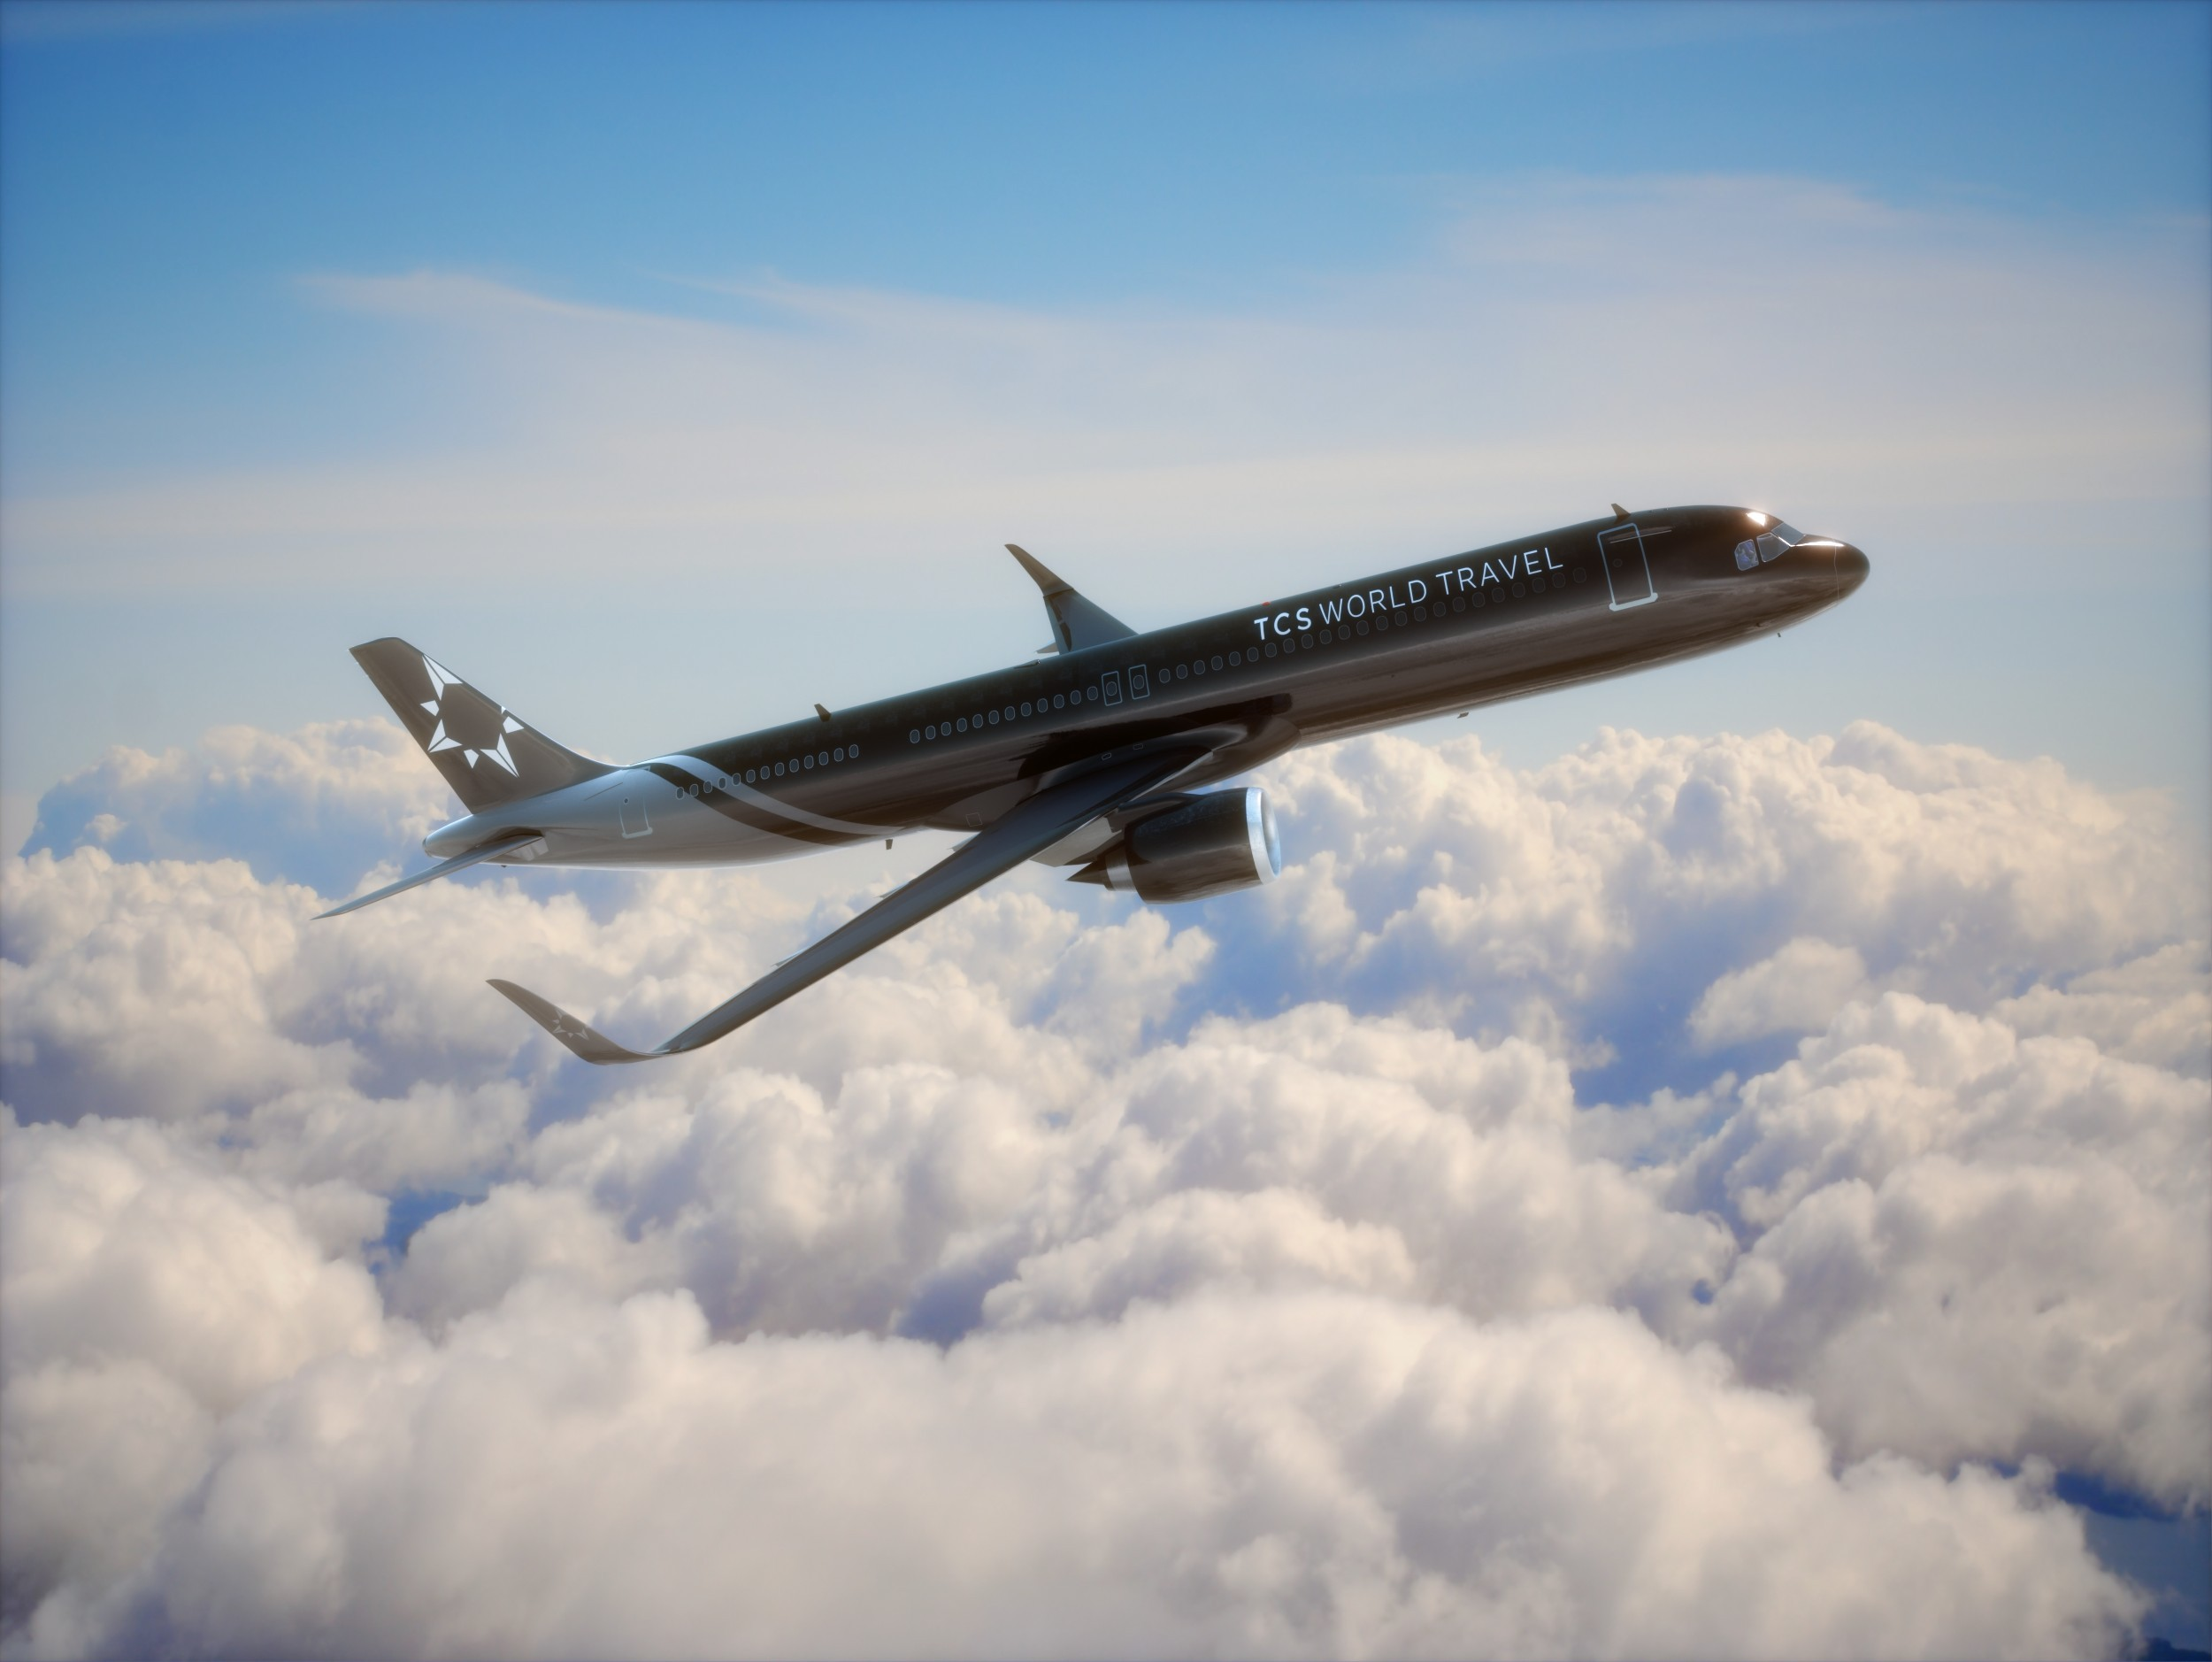 """Travelers Can Explore Nine Legendary Destinations On TCS World Travel's """"Around The World"""" Luxury Jet Tour In New Customized Airbus A321neo-LR Aircraft."""